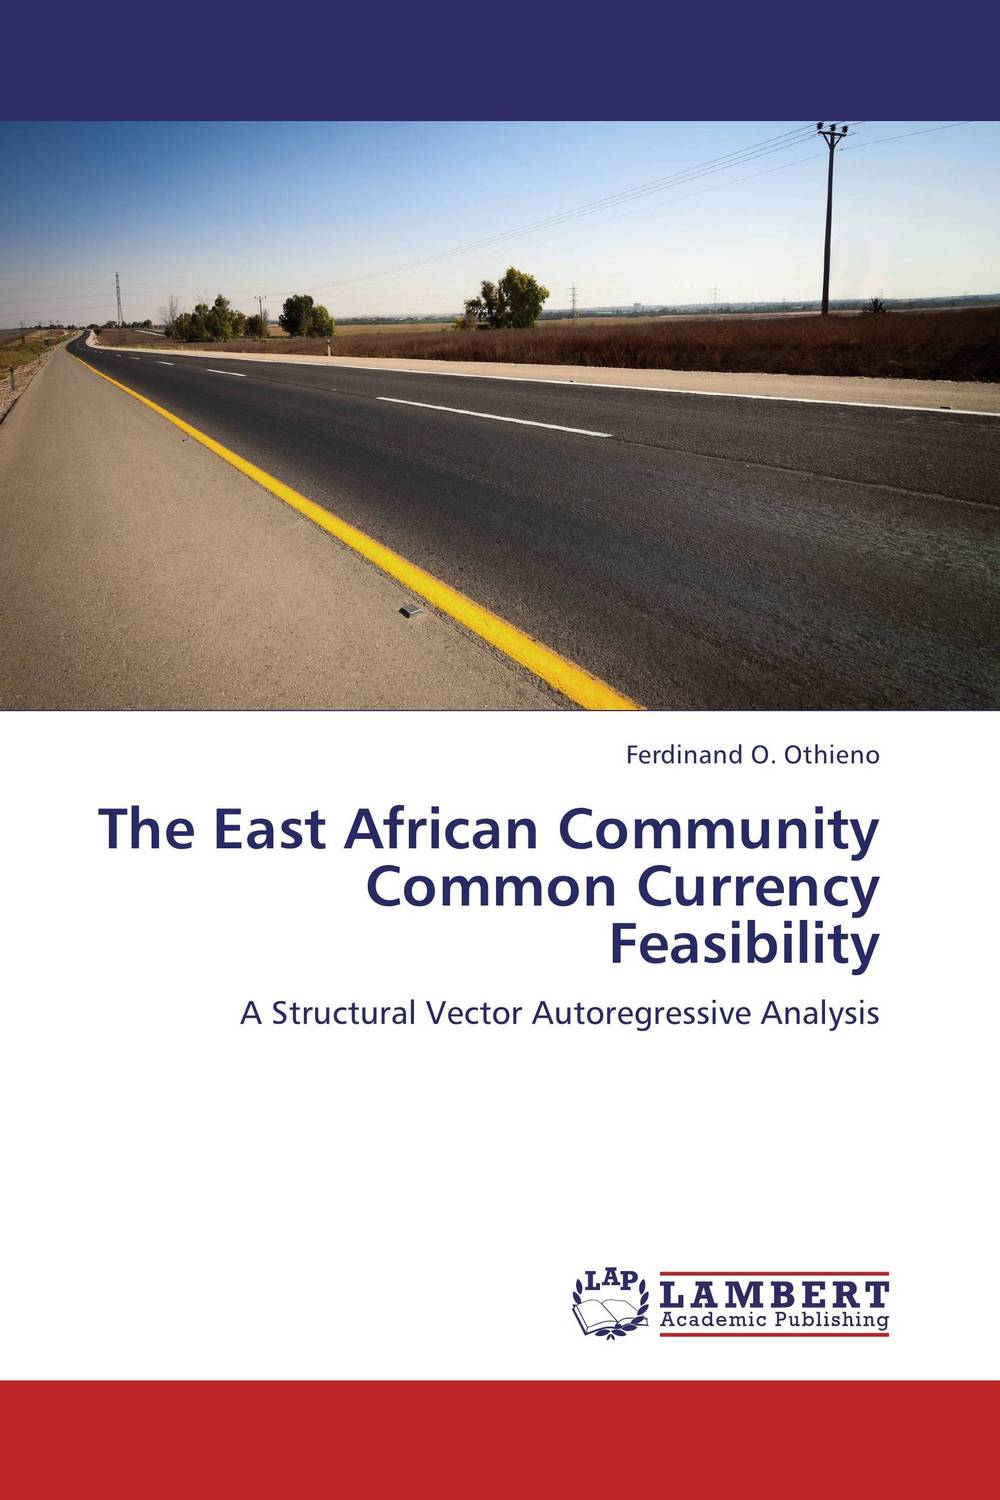 The East African Community Common Currency Feasibility south korea's role in building the east asian community